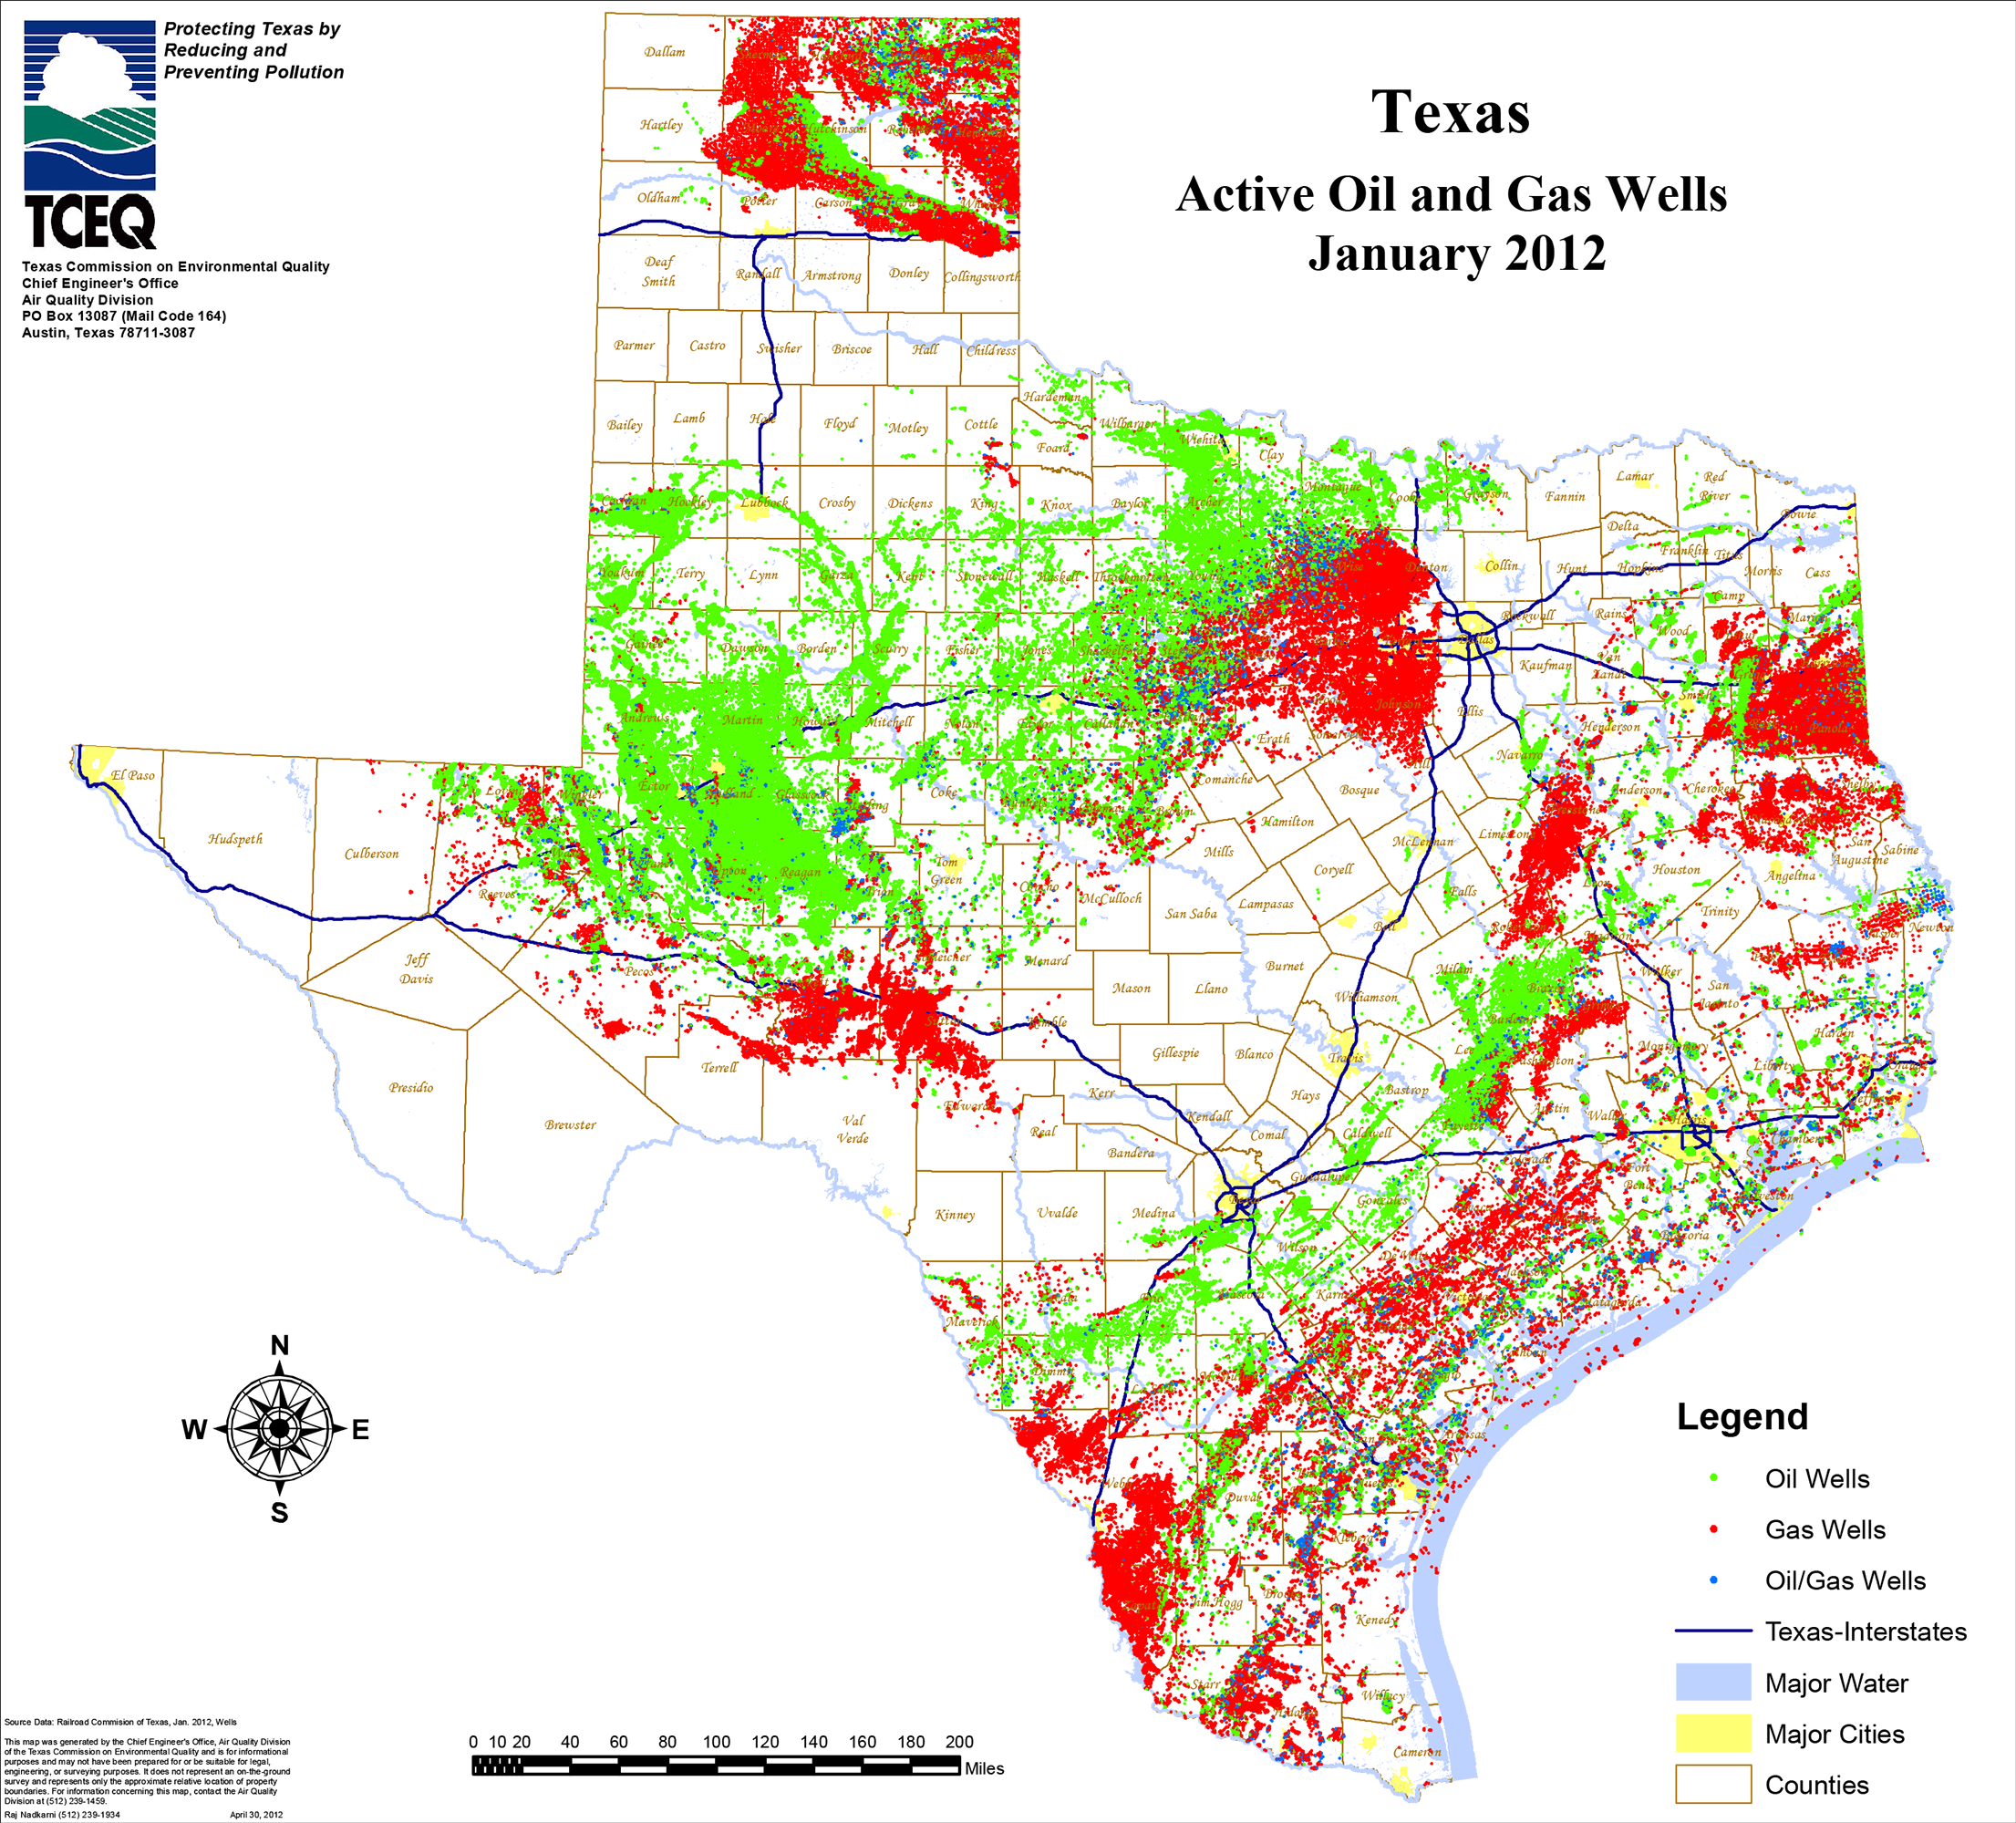 Texas Acrive Oil & Gas Wells 2012